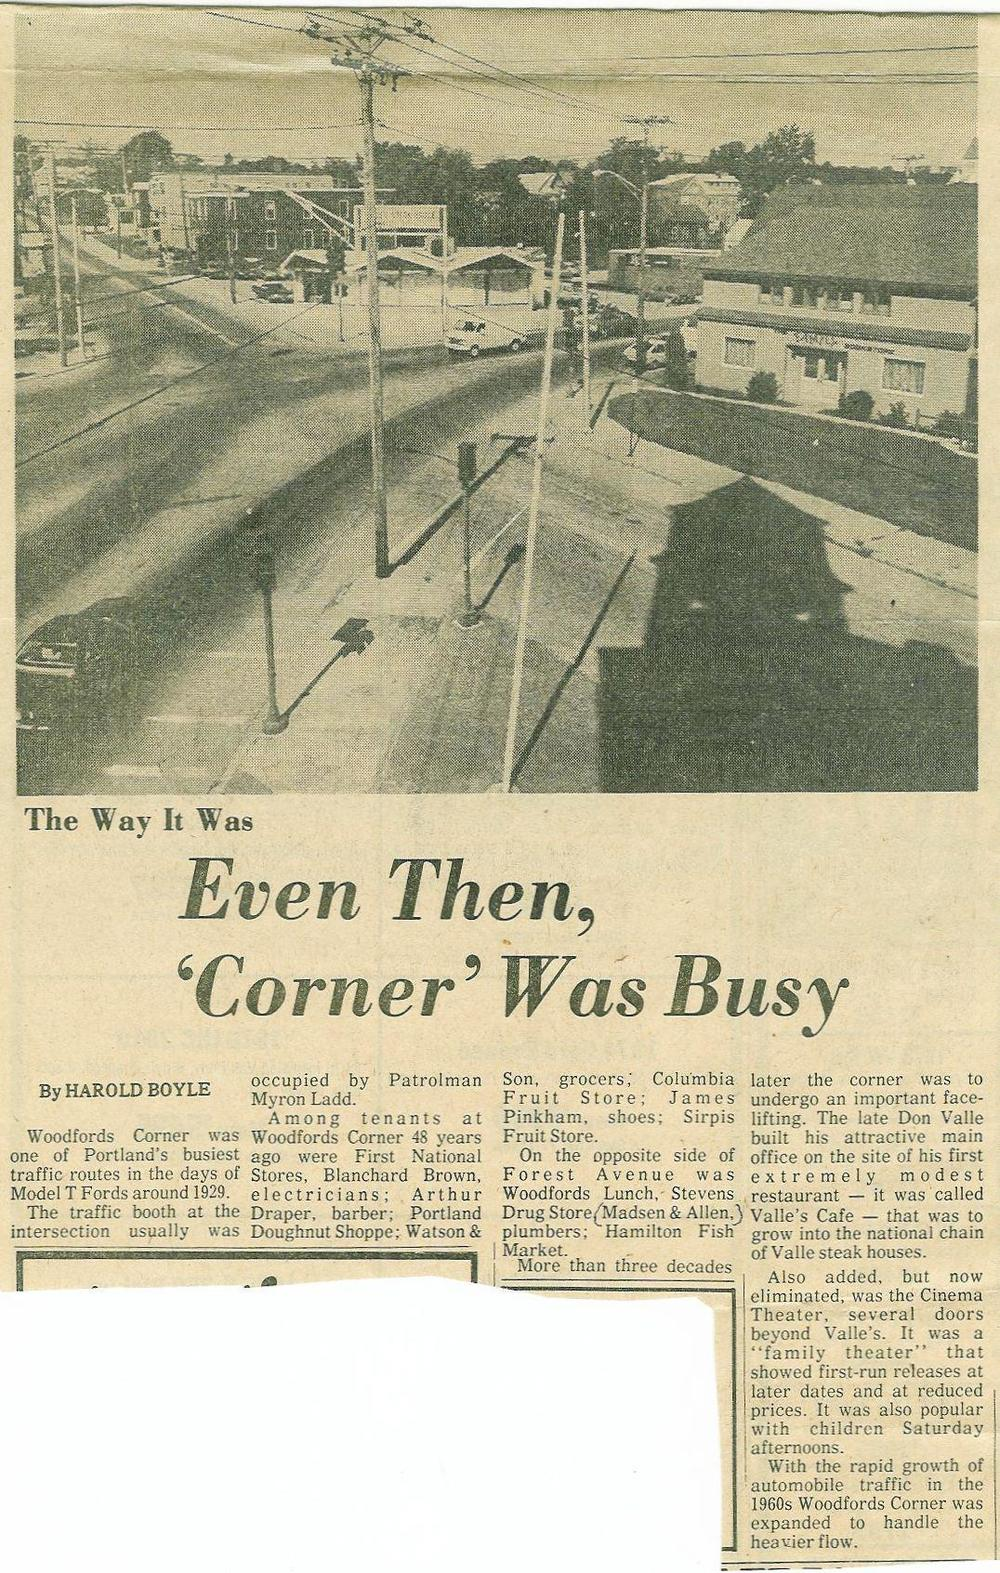 Article from 1977 about the traffic challenges of WC.